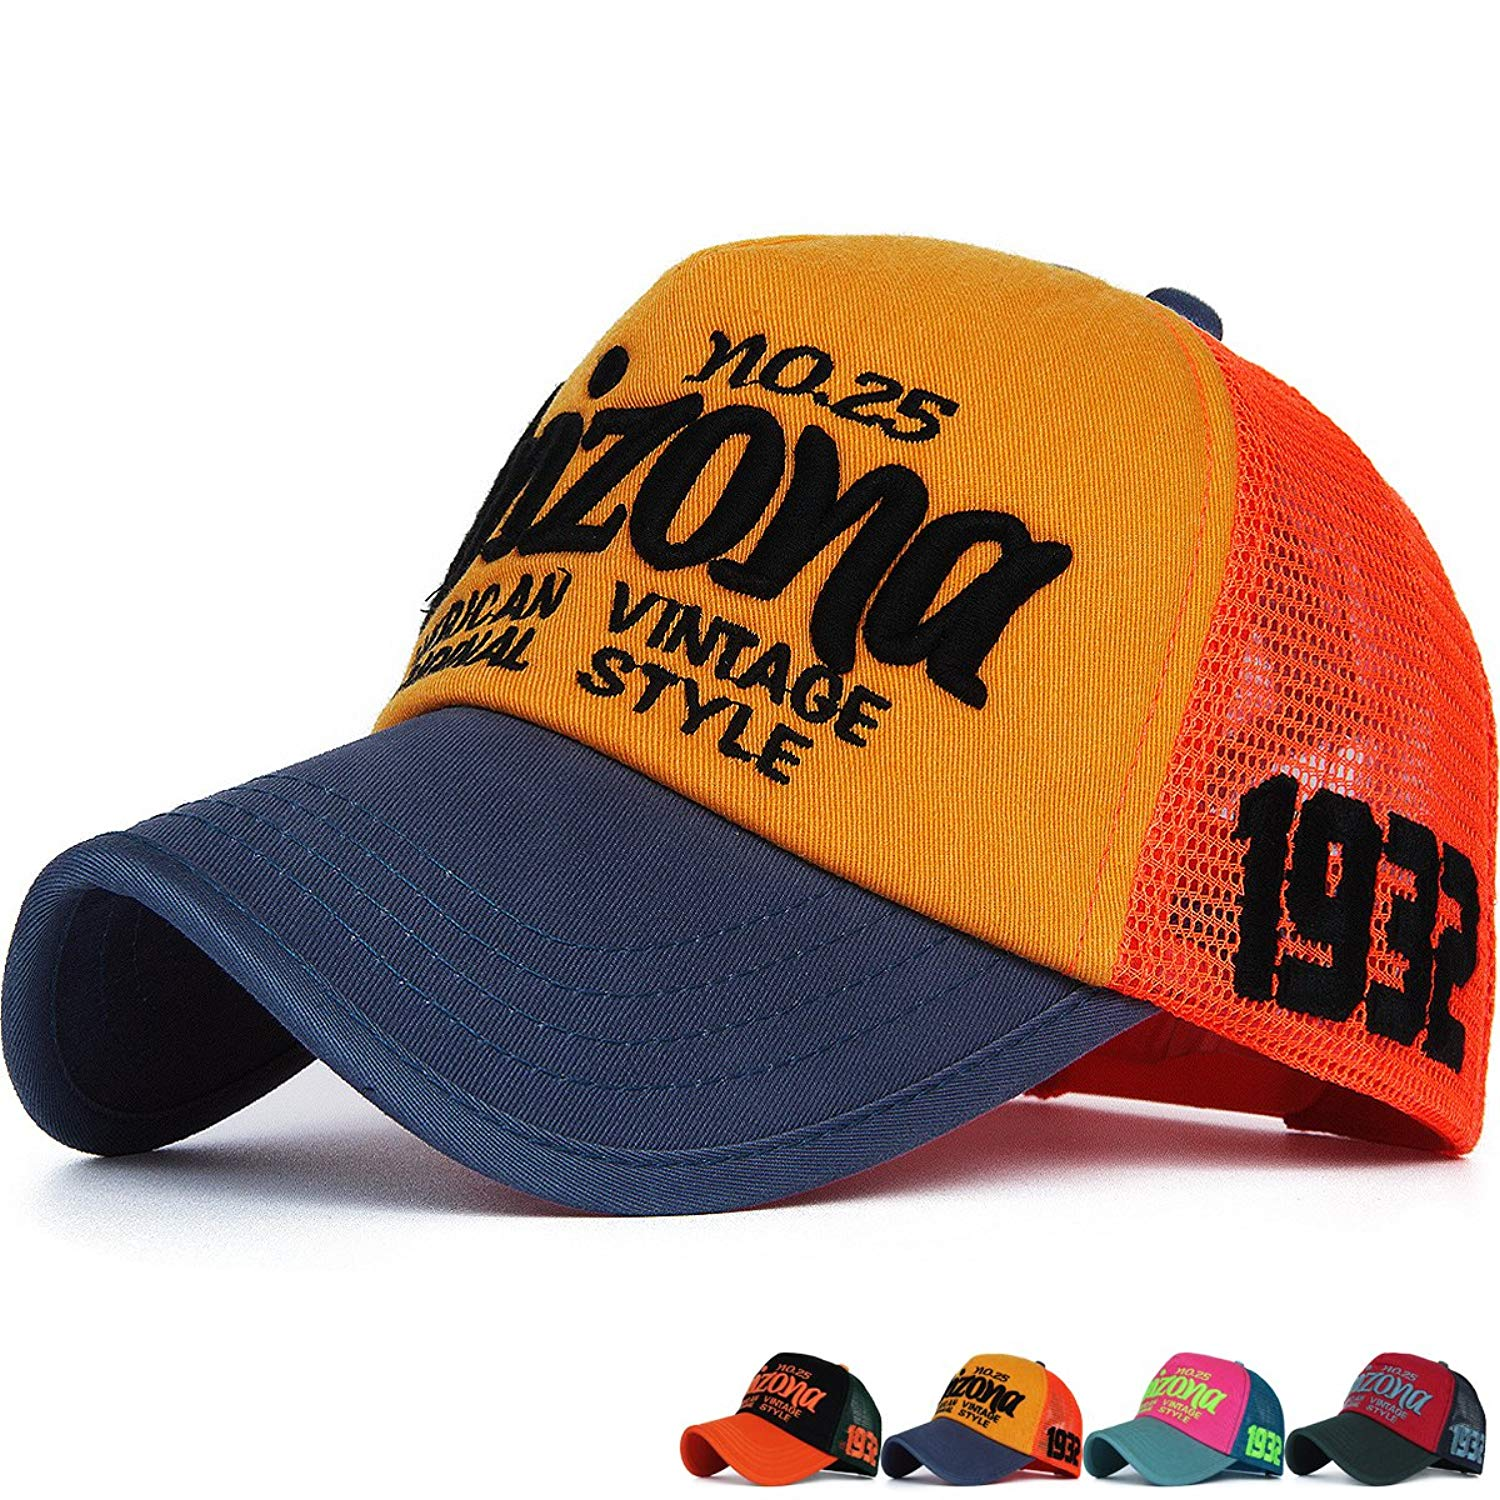 feaf611a3be0c5 Get Quotations · Rayna Fashion Mesh Snapback Trucker Hat Structured Curved  Brim Baseball Cap Dad Hat Embroidered